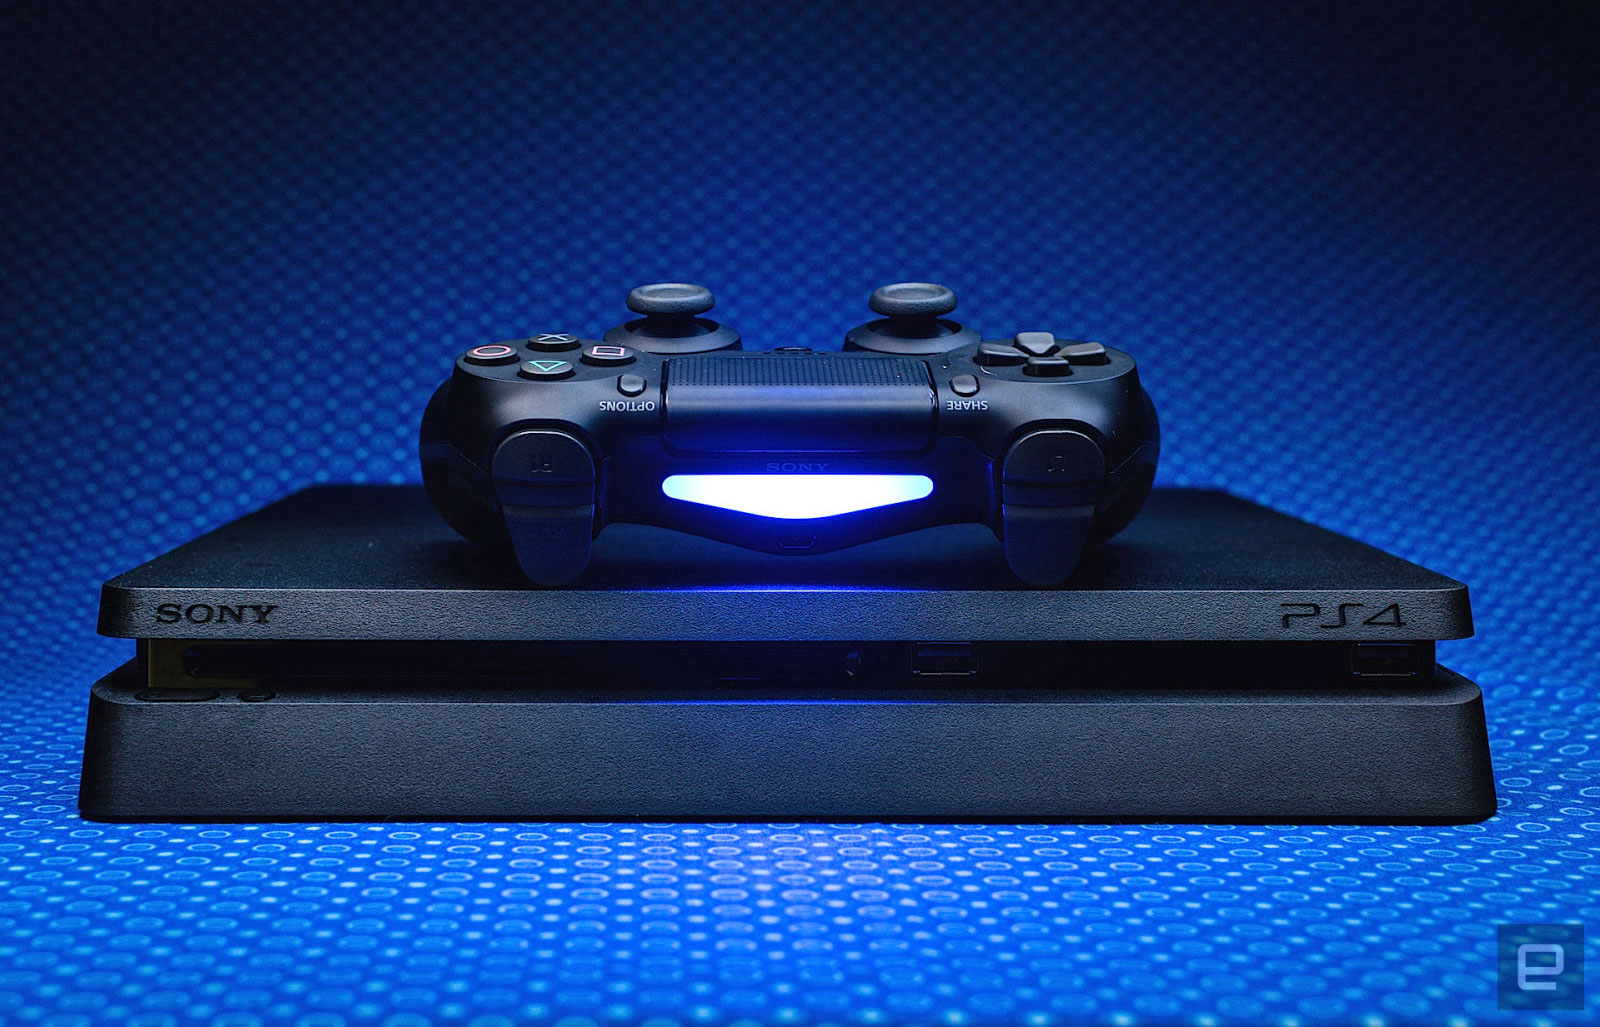 4k Resolution 4k Car Wallpaper Playstation 4 Slim Review Wait For The Ps4 Pro If You Can